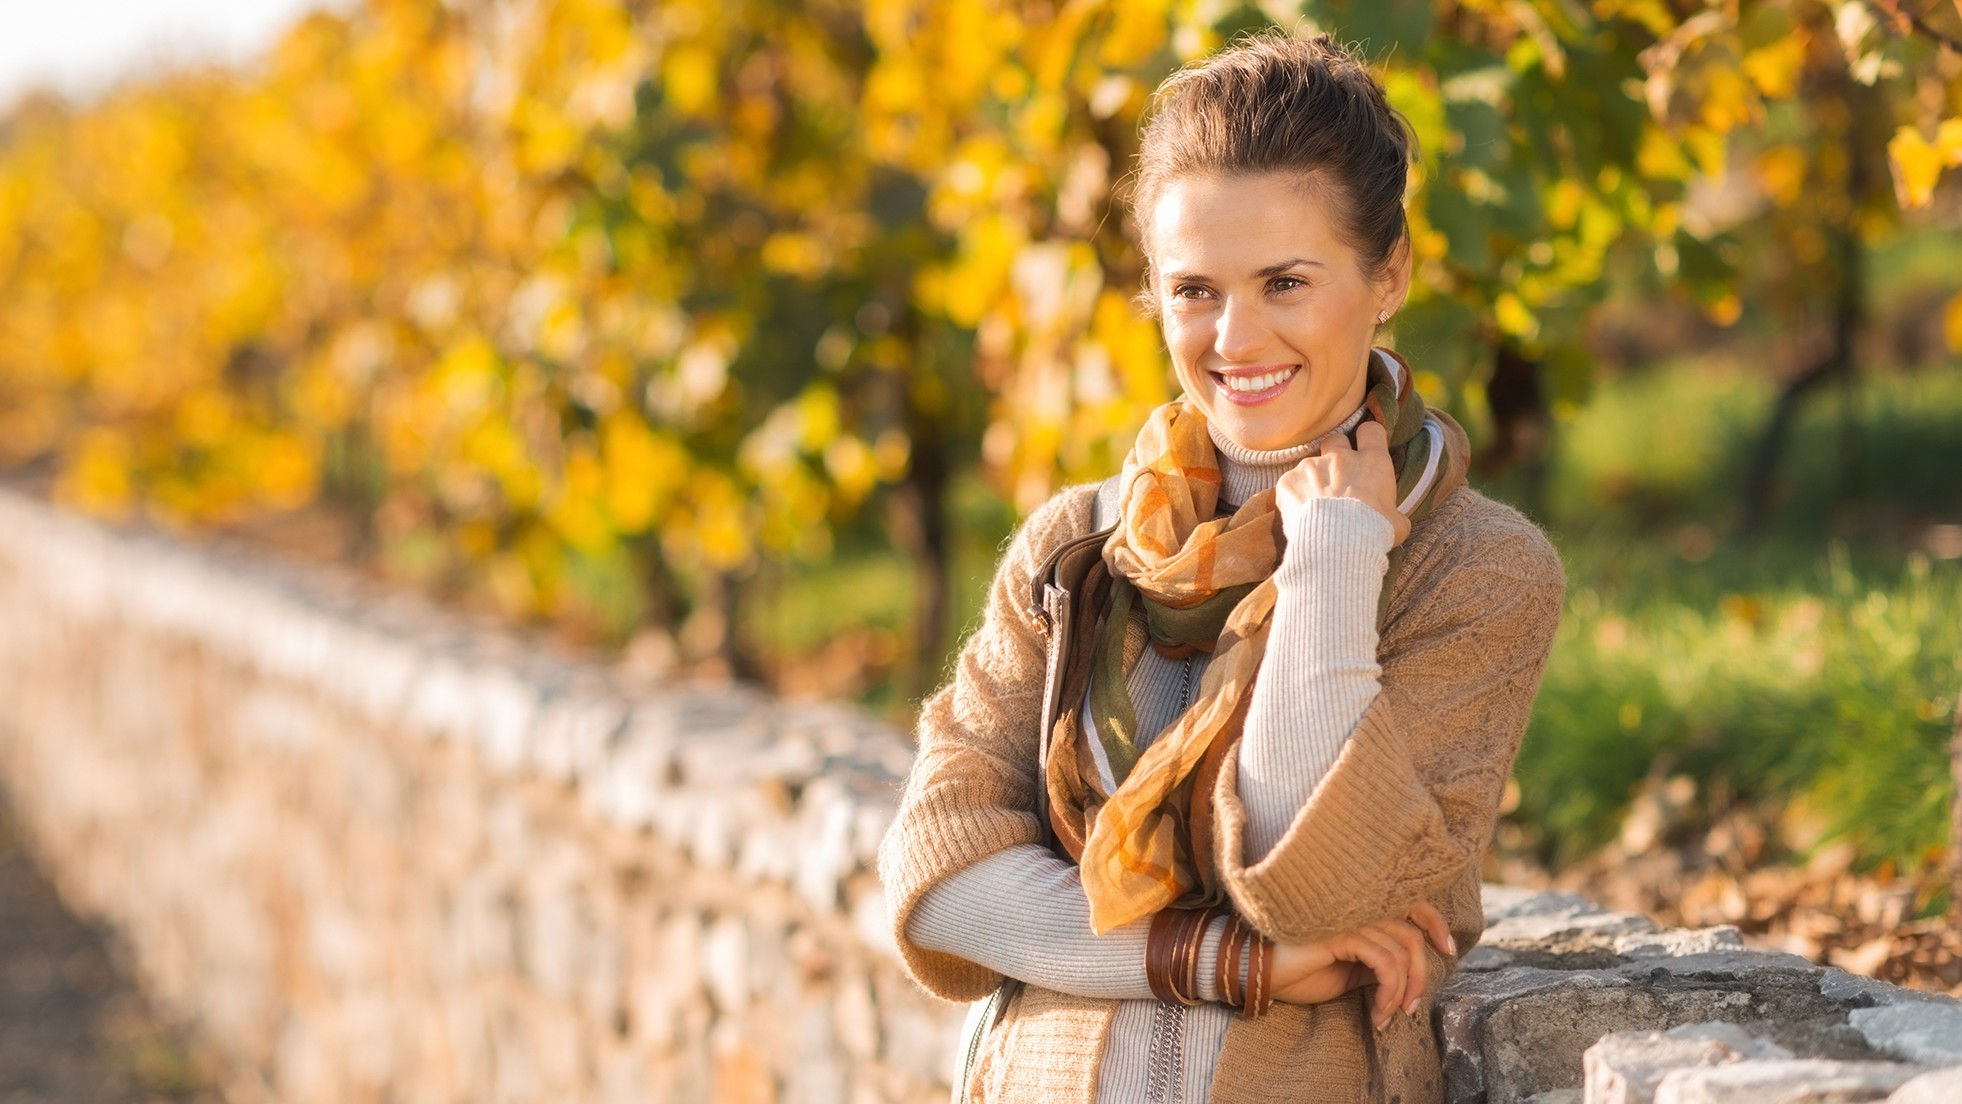 Nonsurgical Procedures: Let's Talk about Botox